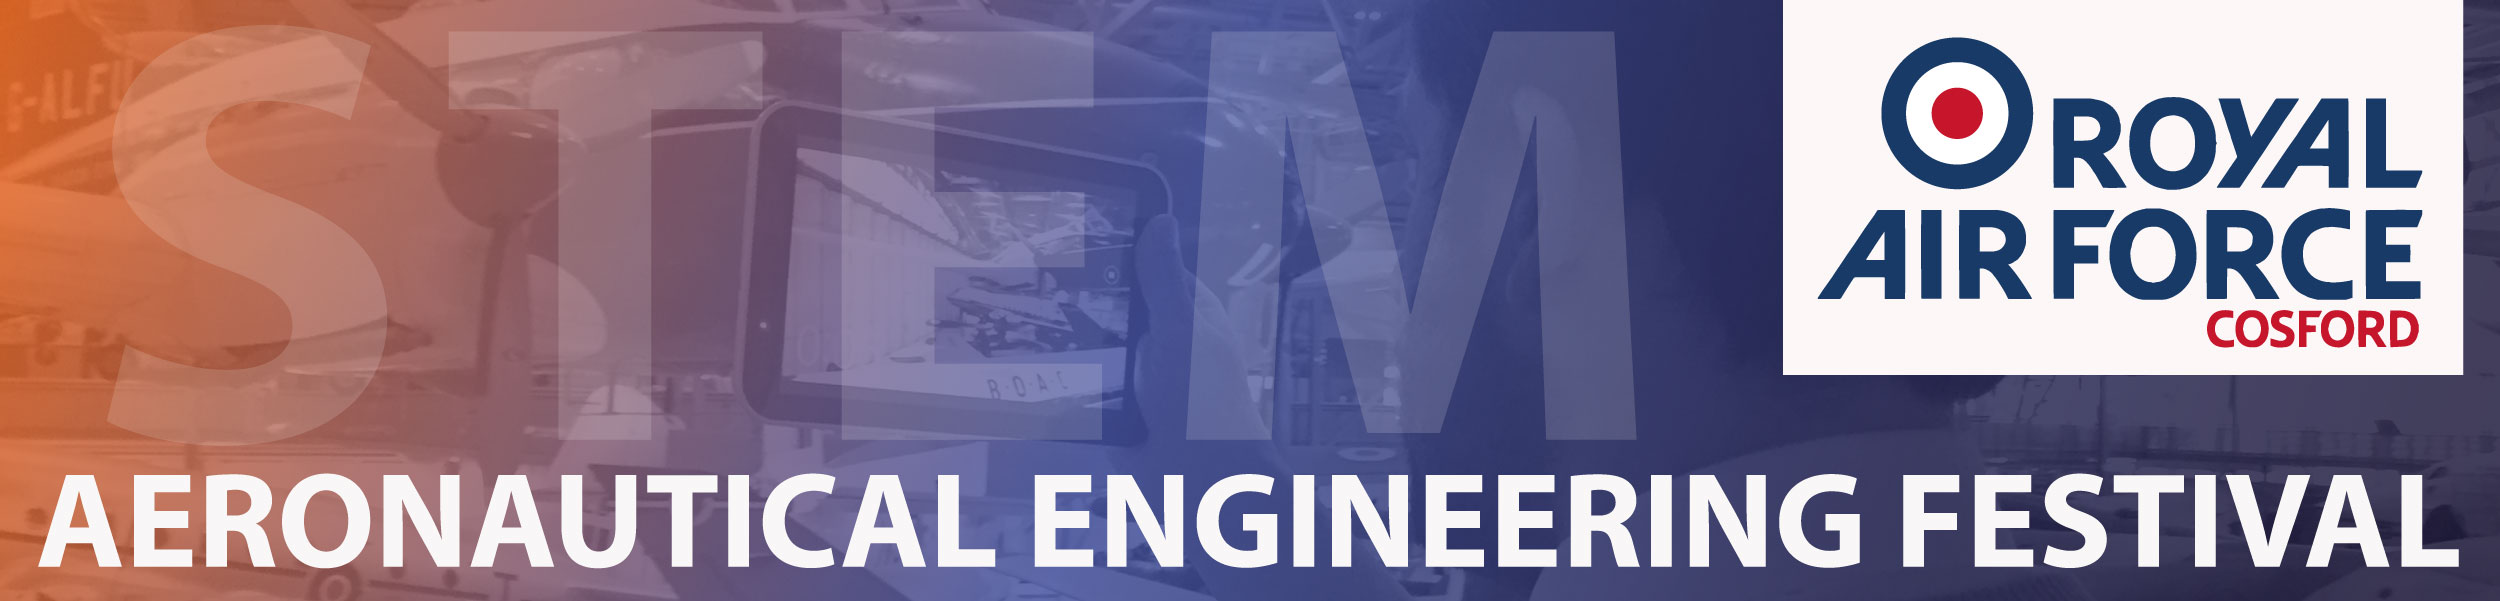 engineering-header